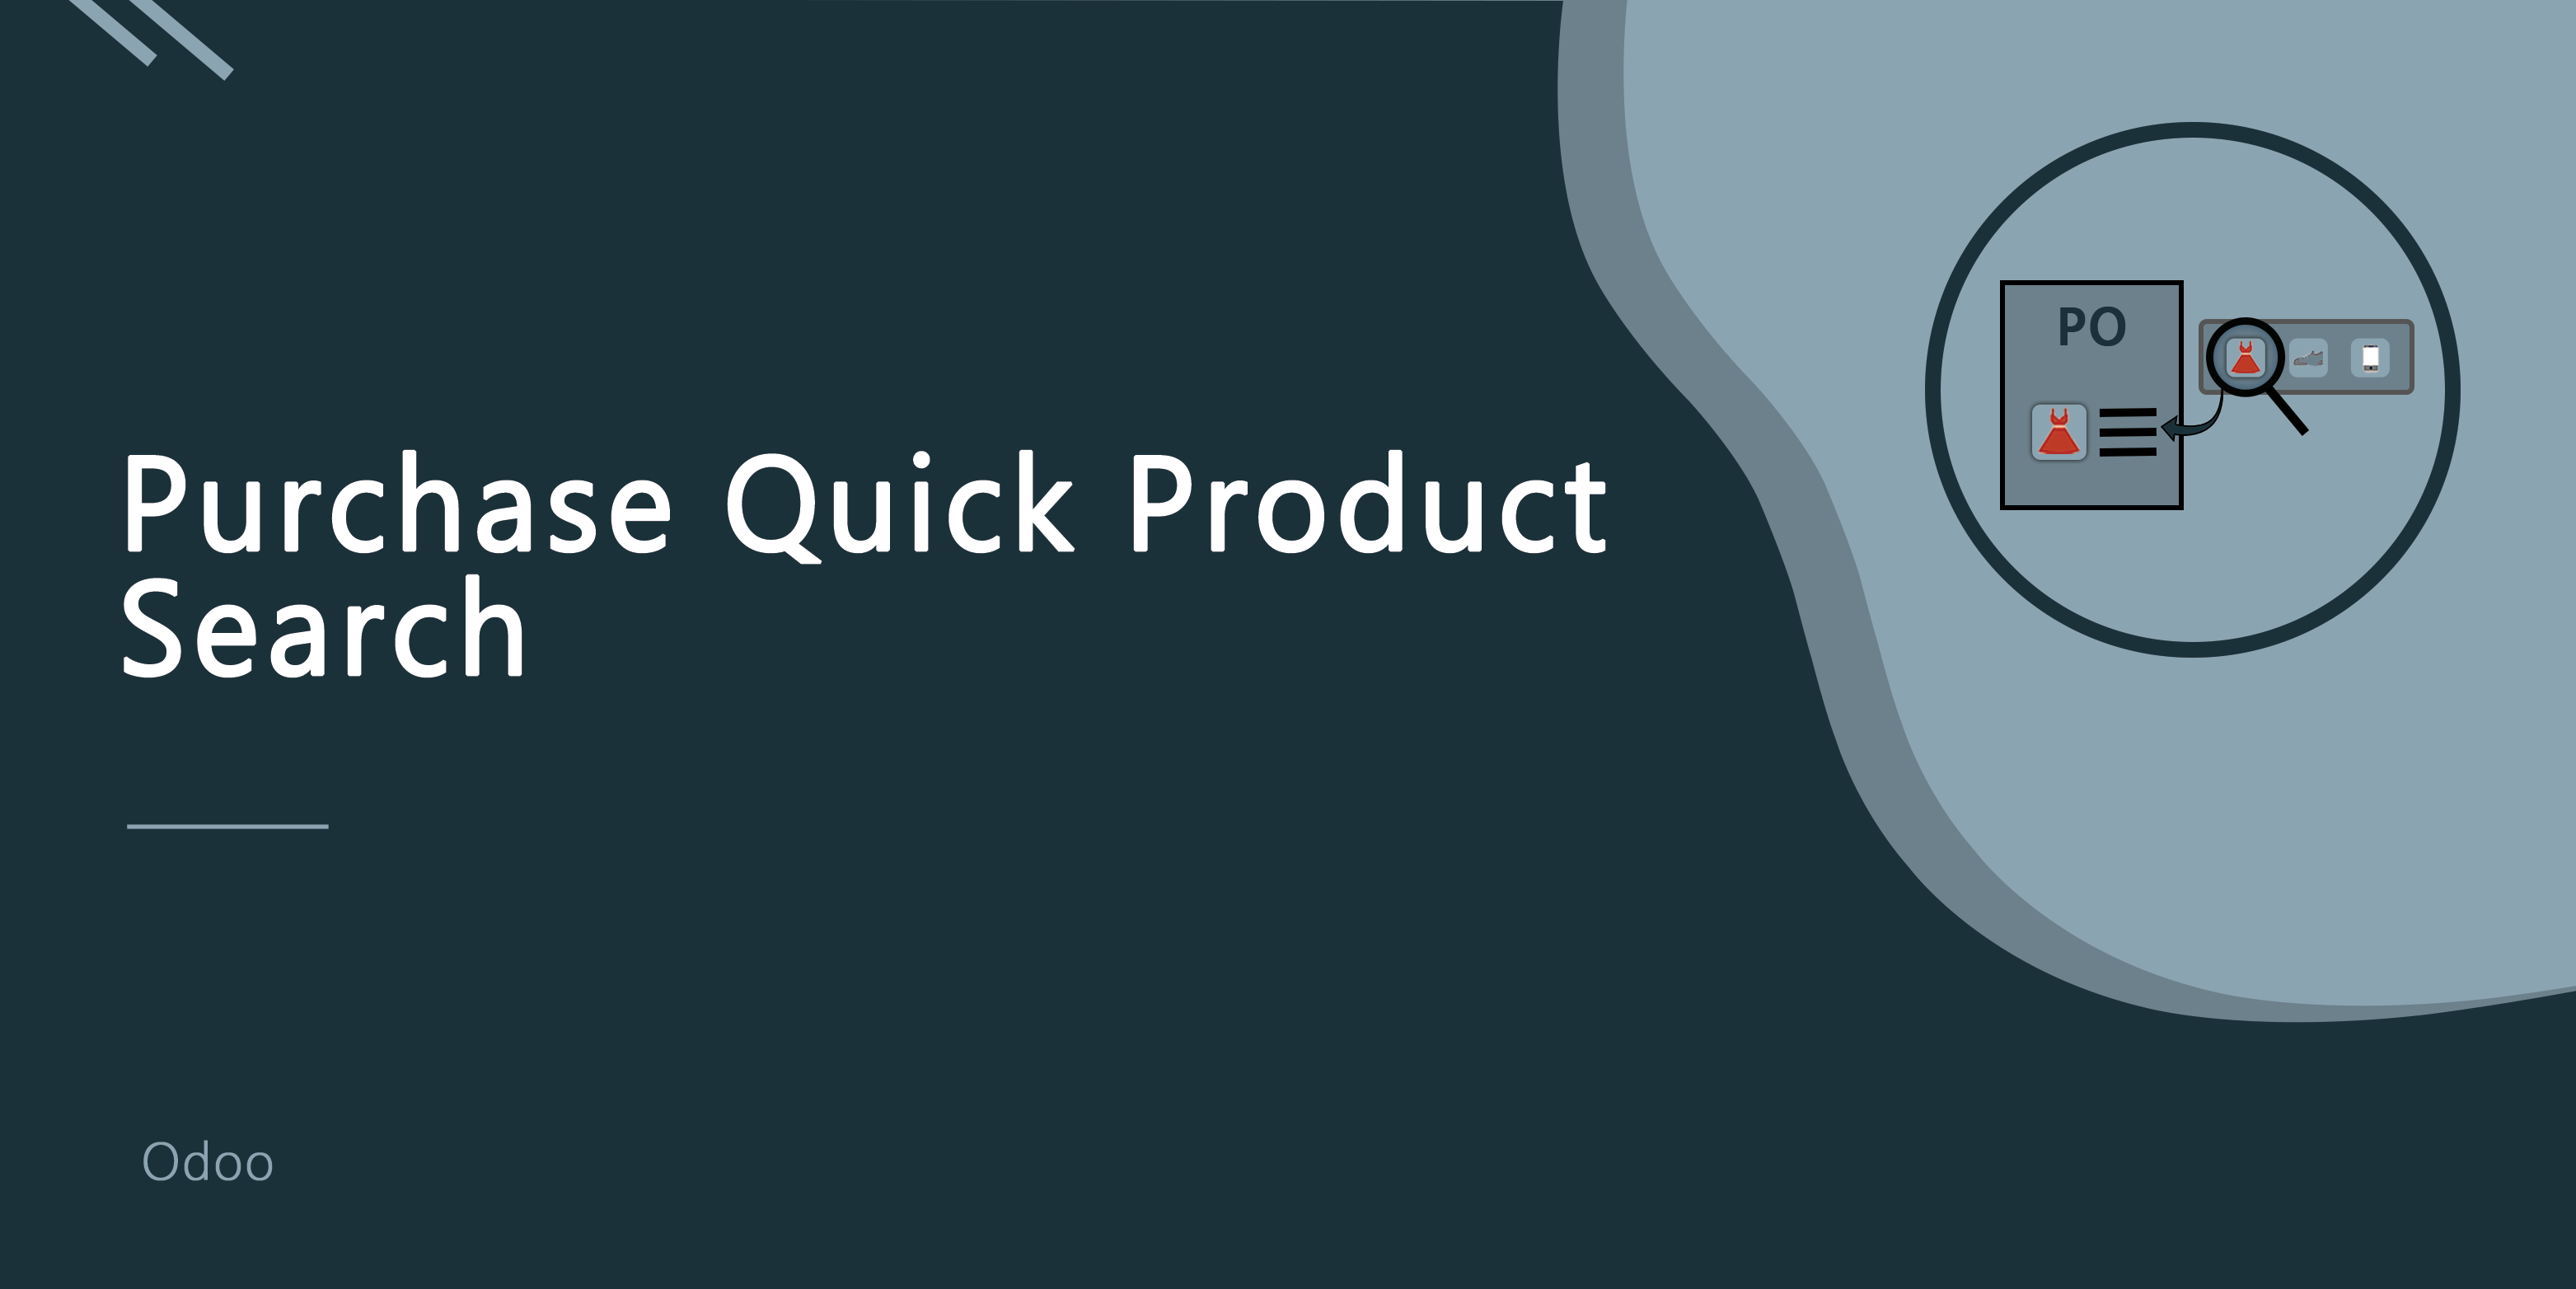 Purchase Quick Product Search